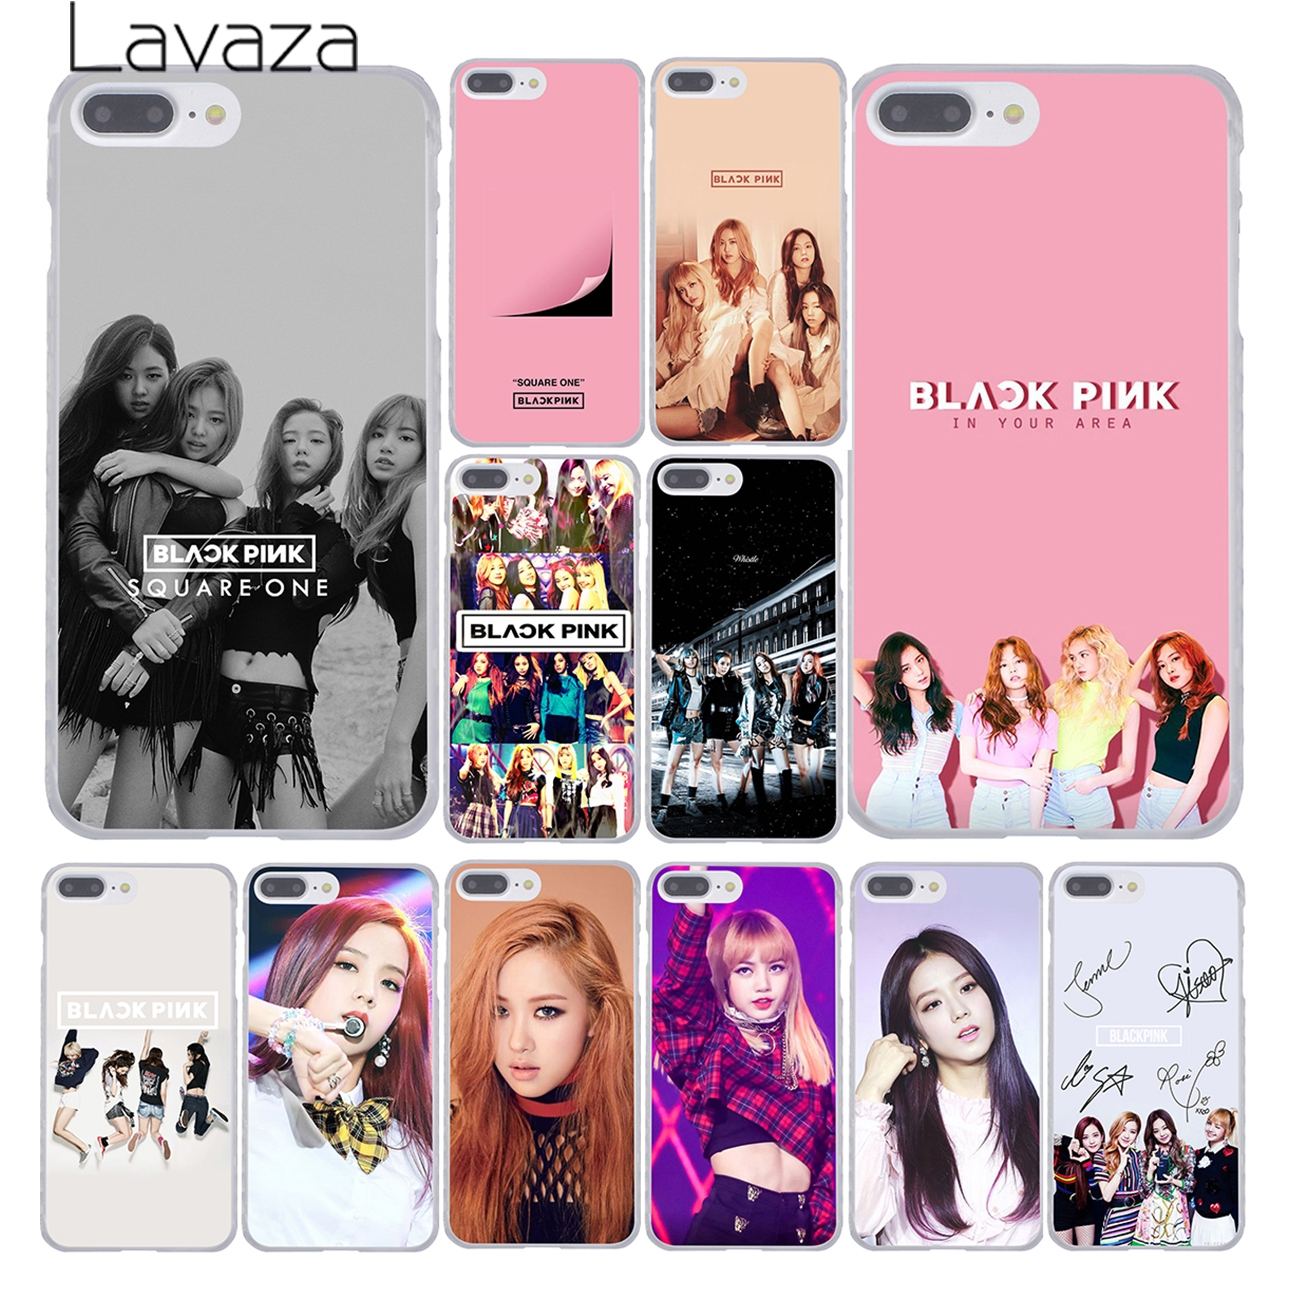 Lavaza BLACK PINK BLACKPINK Kpop Collage Phone Cover Case For Apple IPhone X XR XS Max 6 6S 7 8